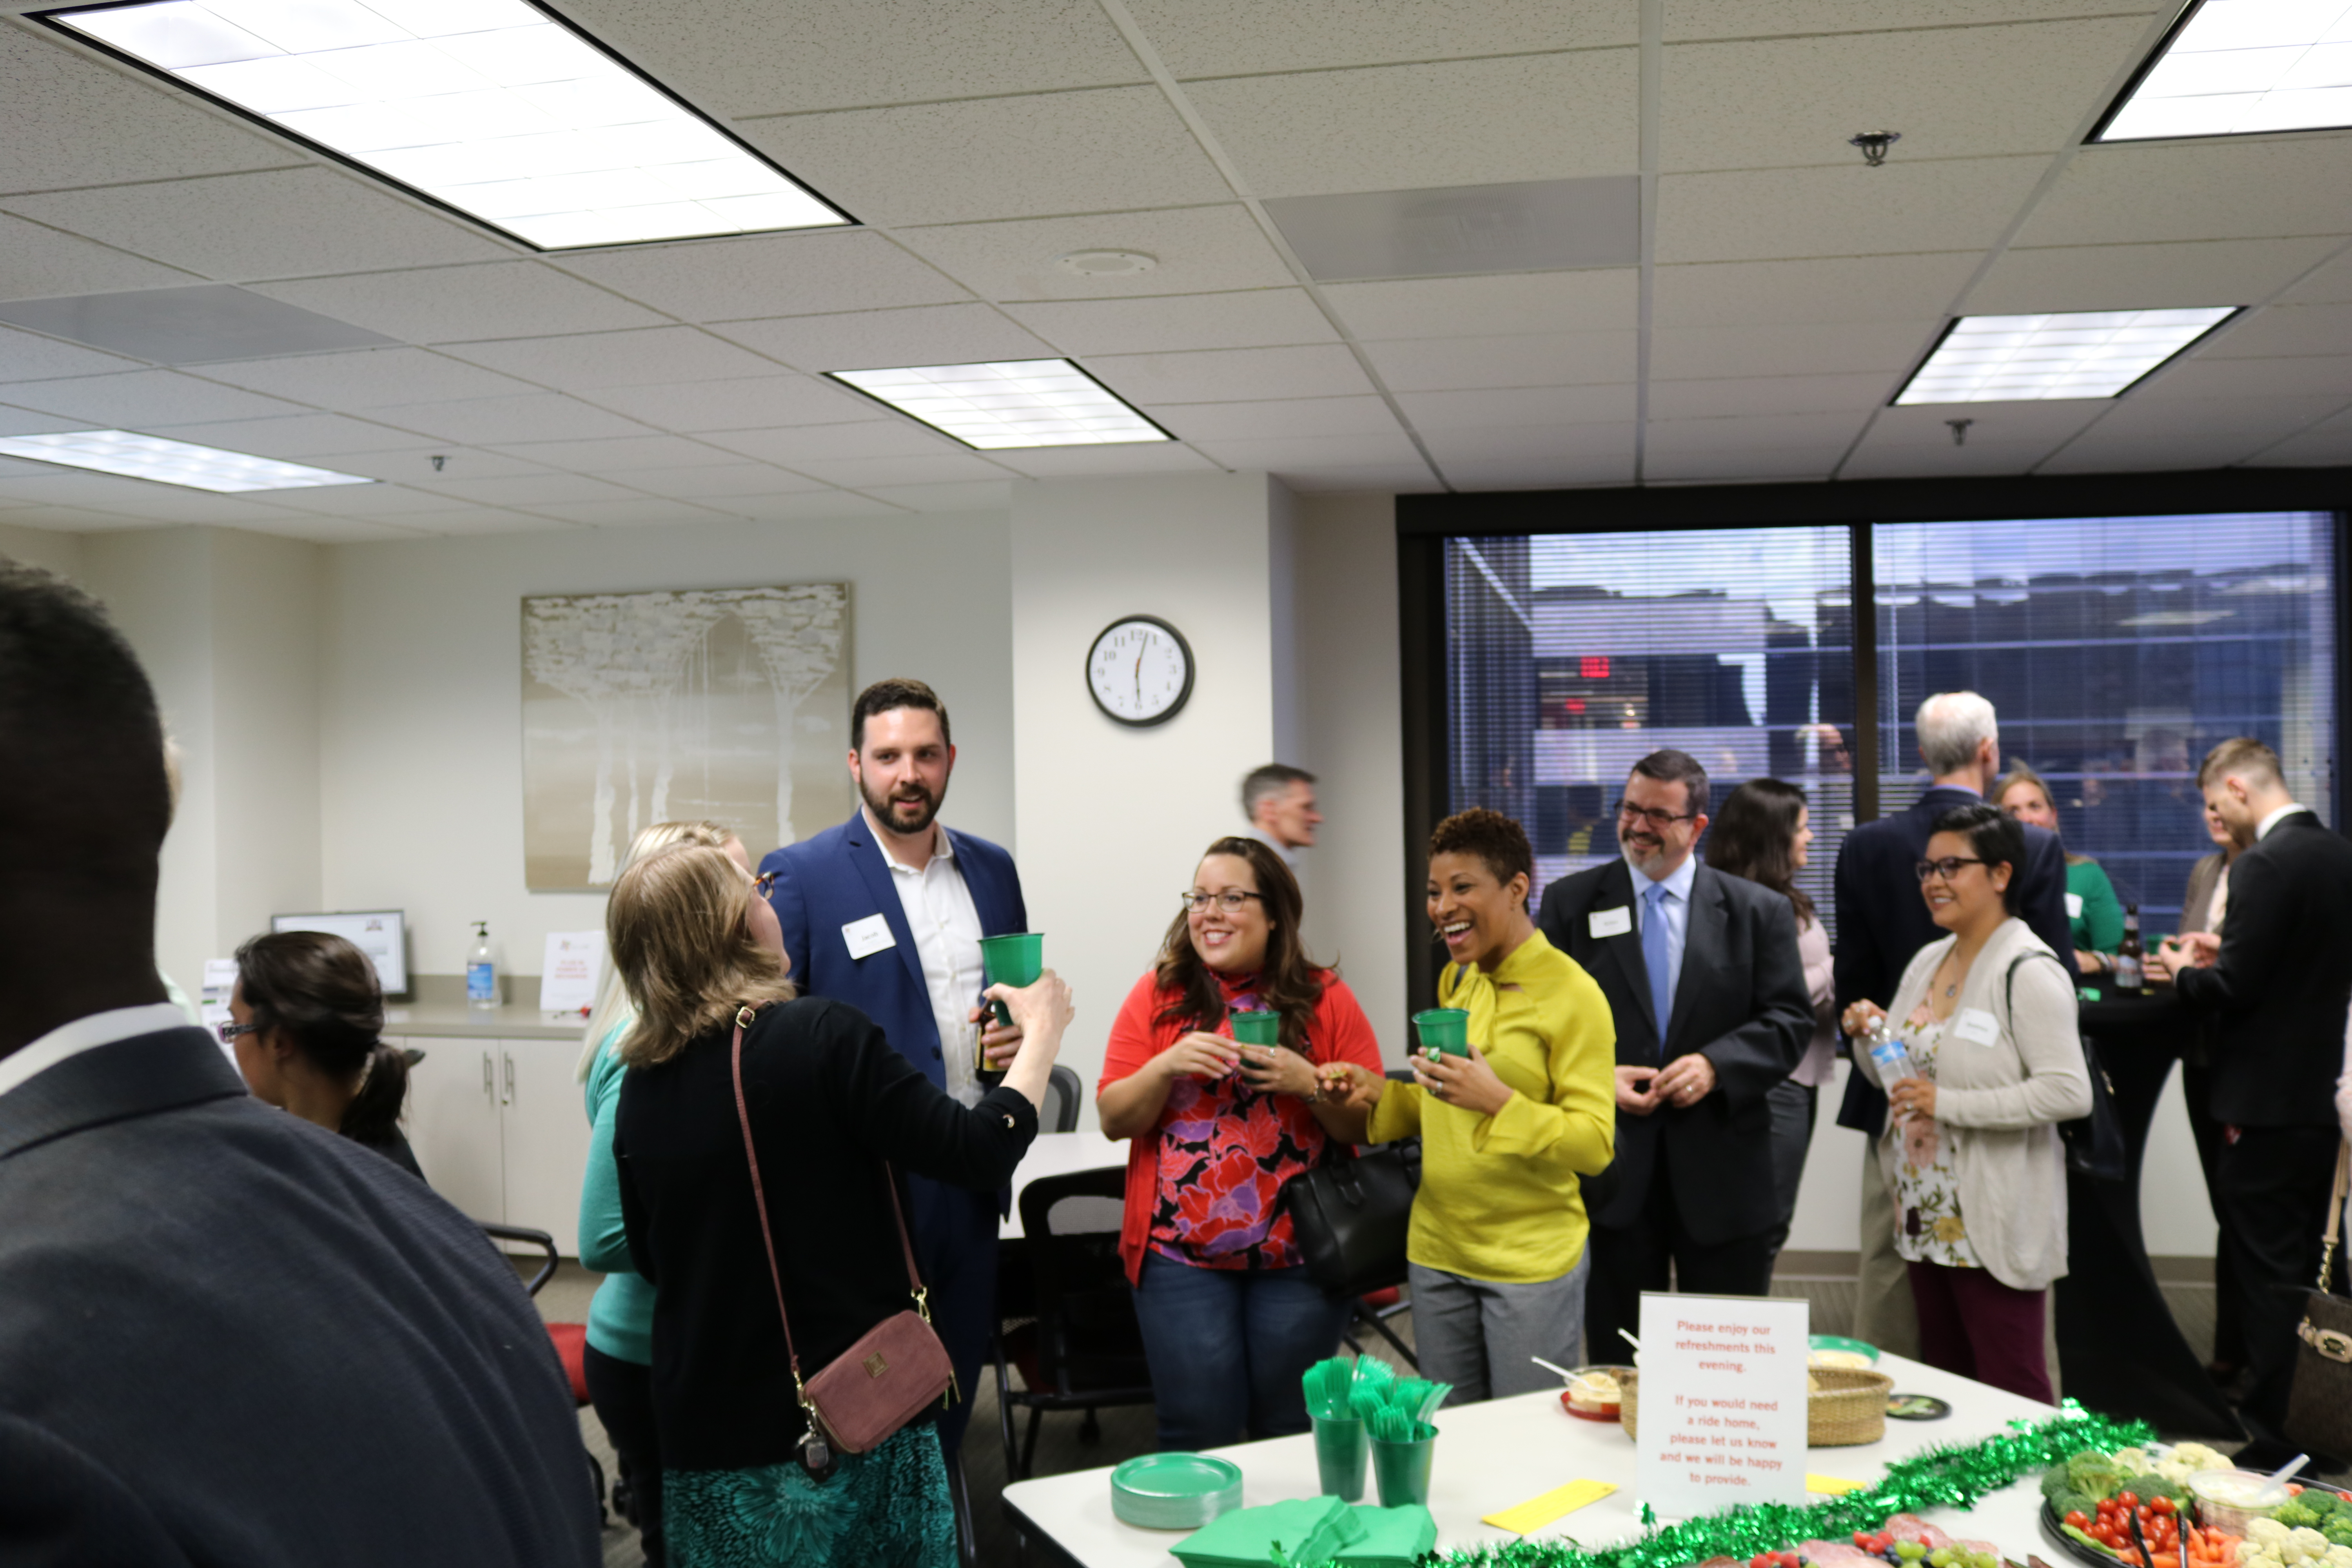 Networking Event At DallasHR Office